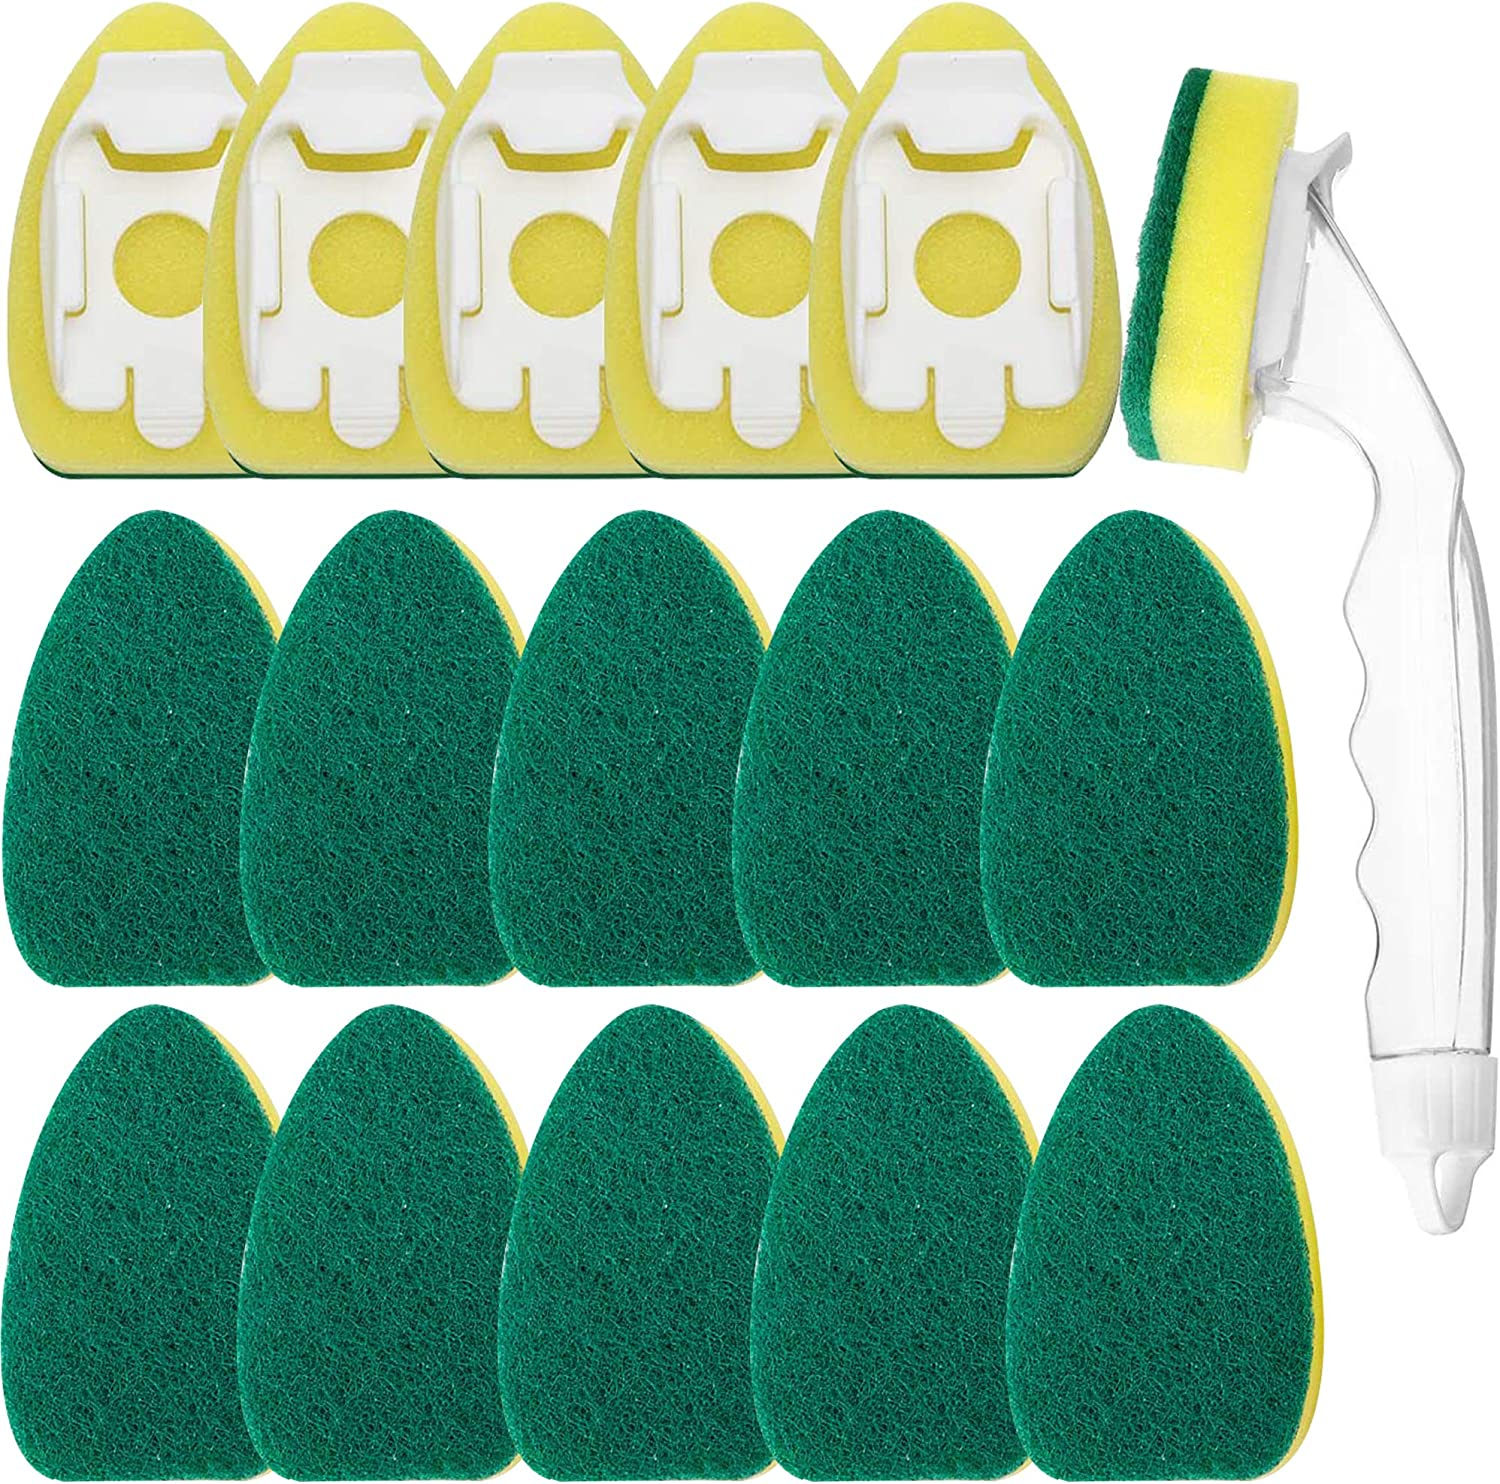 1 Dish Wands and 15 Pack Dish Refills Sponge Heads Brush Replacement Sponge Refill Sponge Pads for Kitchen Room Cleaning Supplies